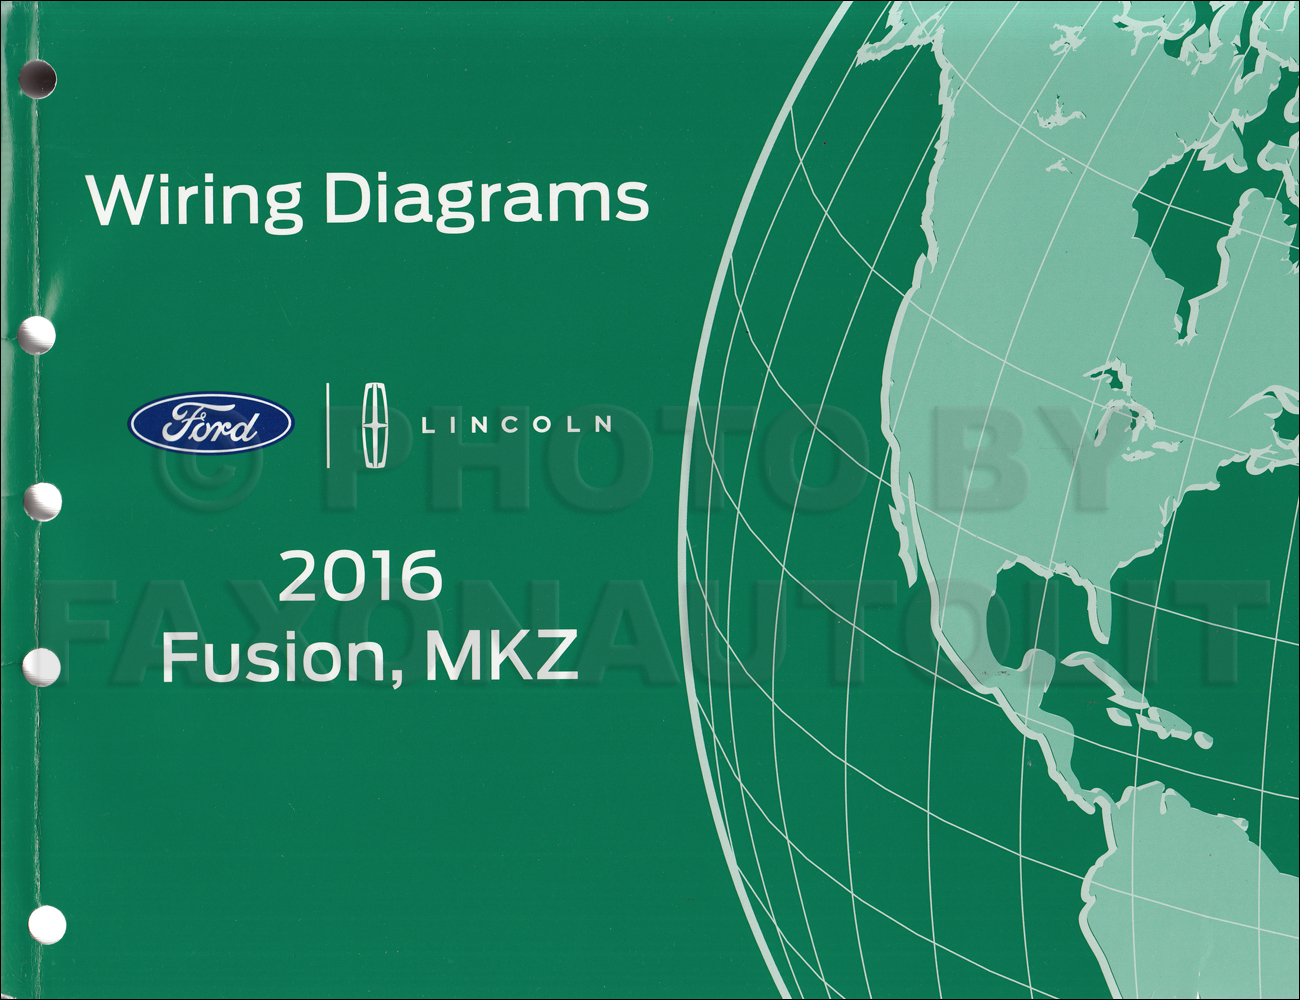 Lincoln Mkz Wiring Diagram Schematics Diagrams 2011 Fuse Box 2016 Ford Fusion Manual Original Rh Faxonautoliterature Com 2007